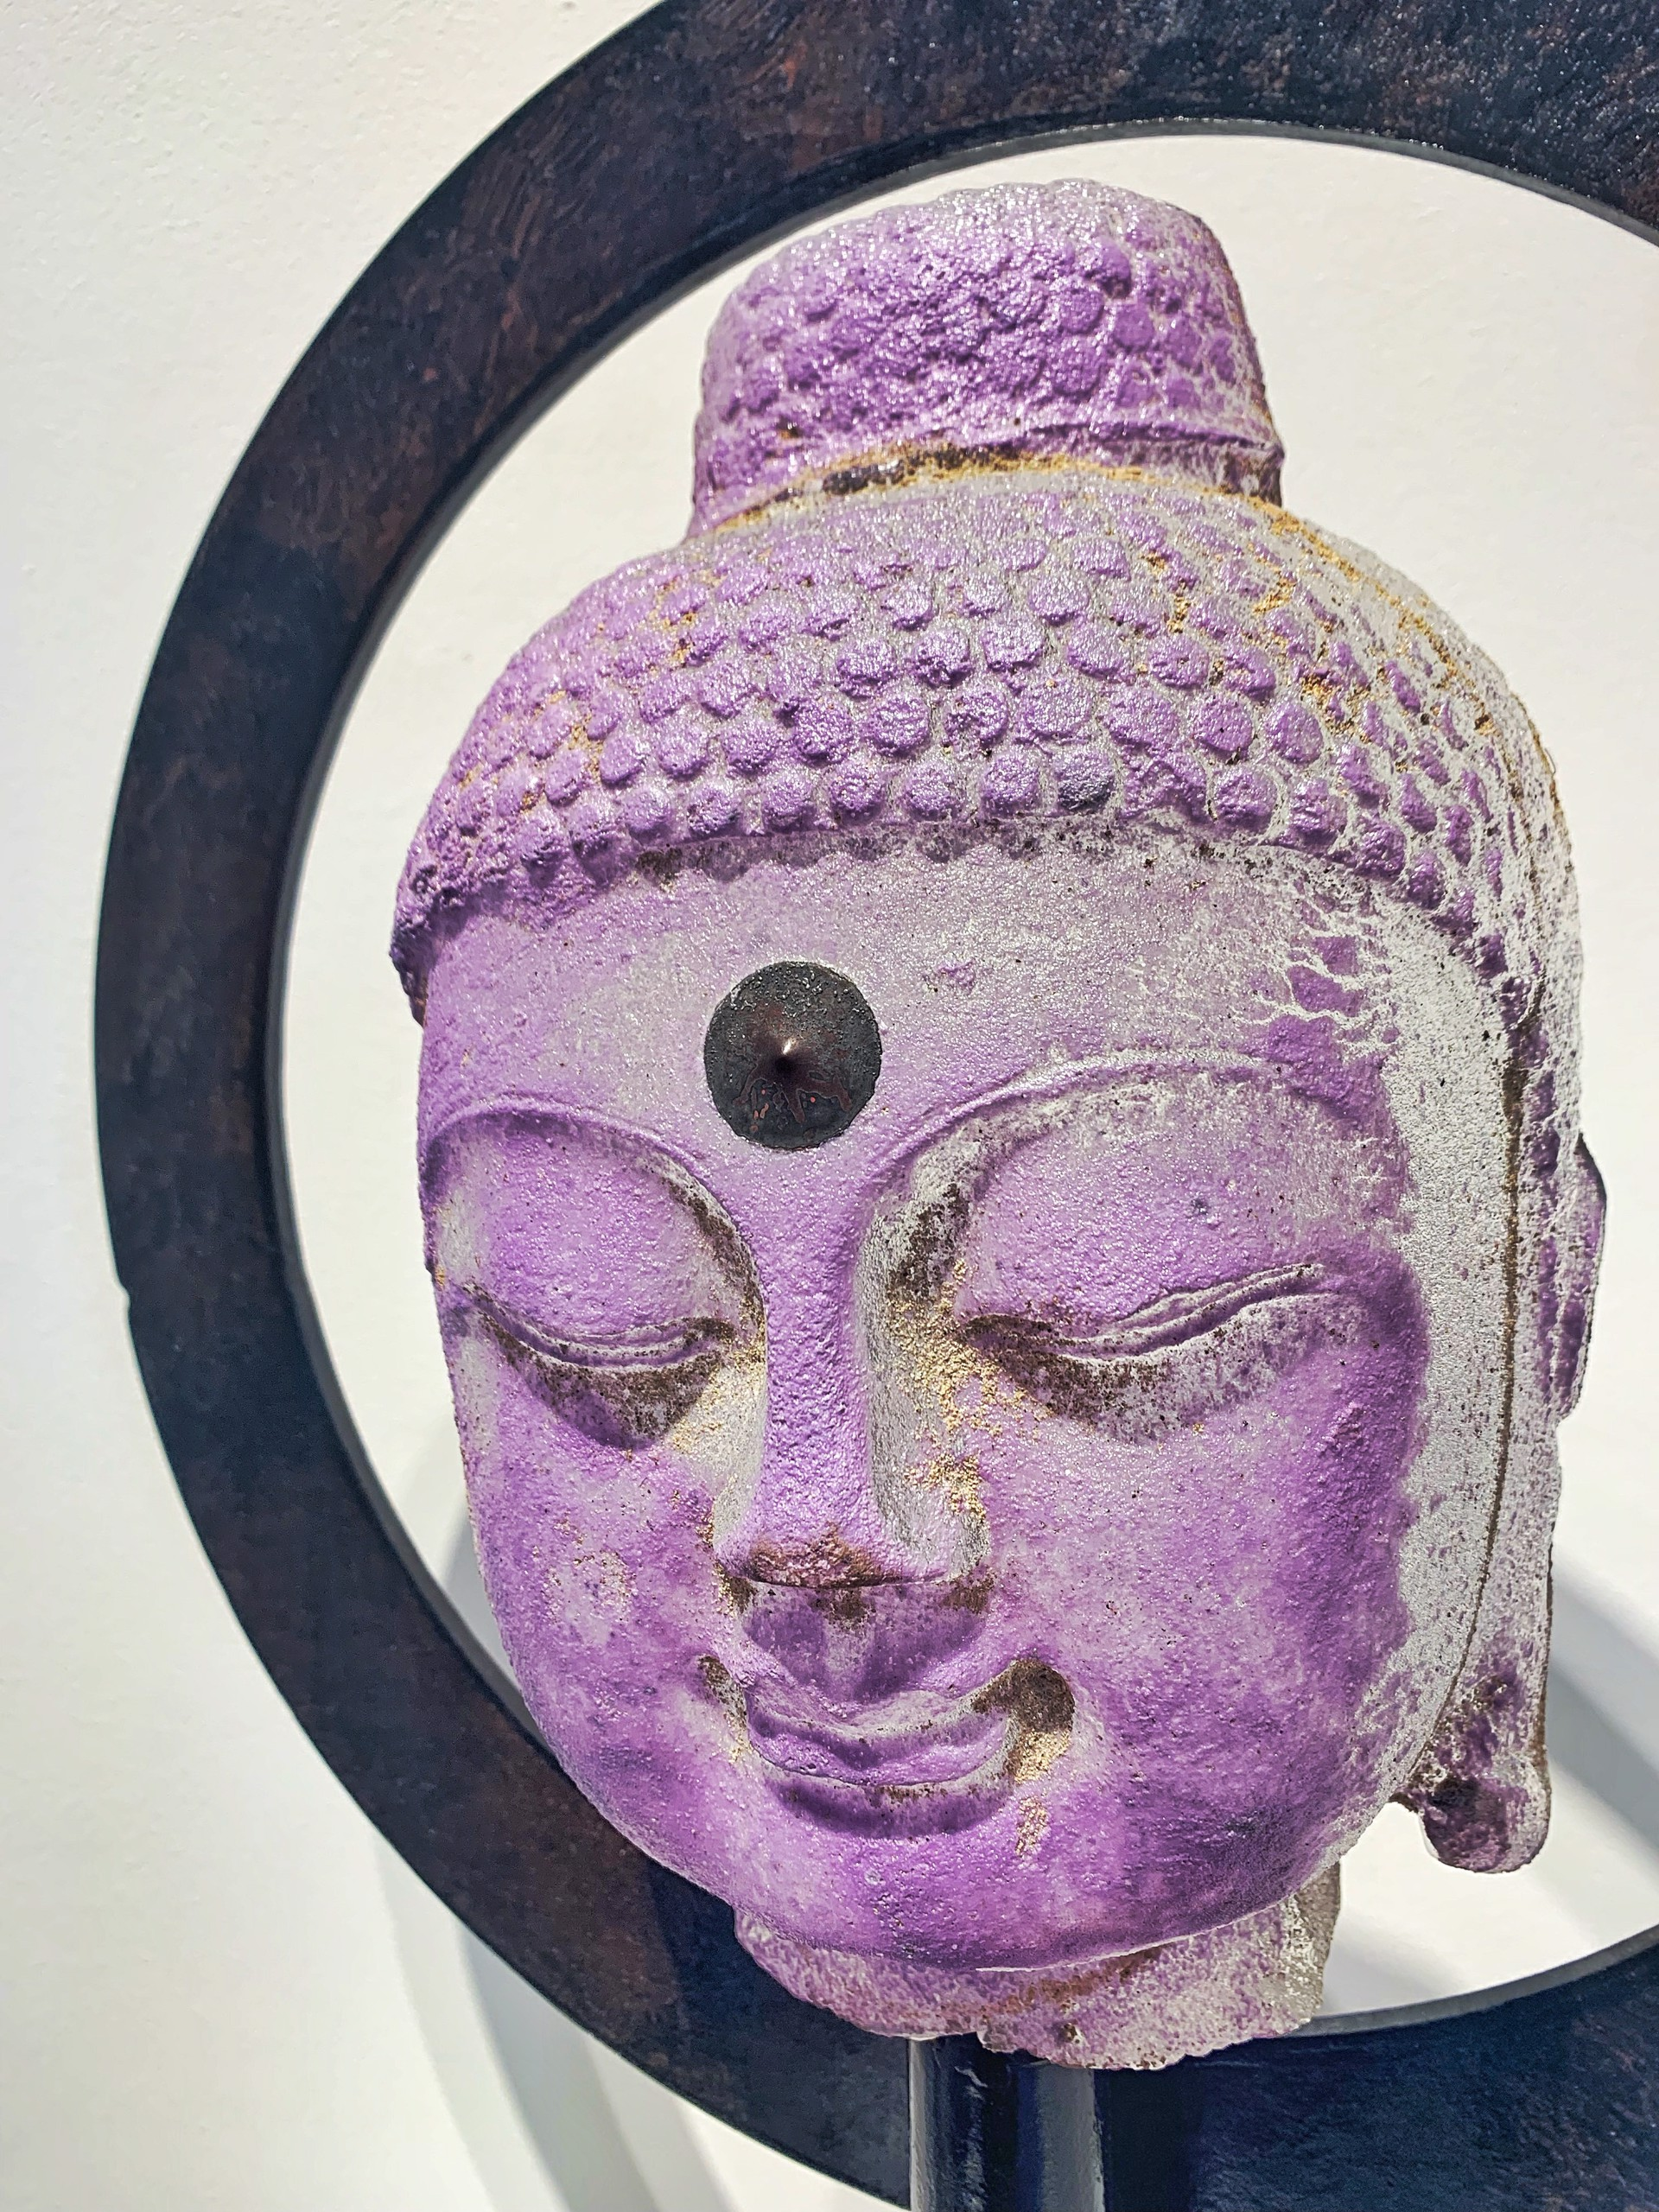 Halo Buddha - Lilac by Marlene Rose (b. 1967)